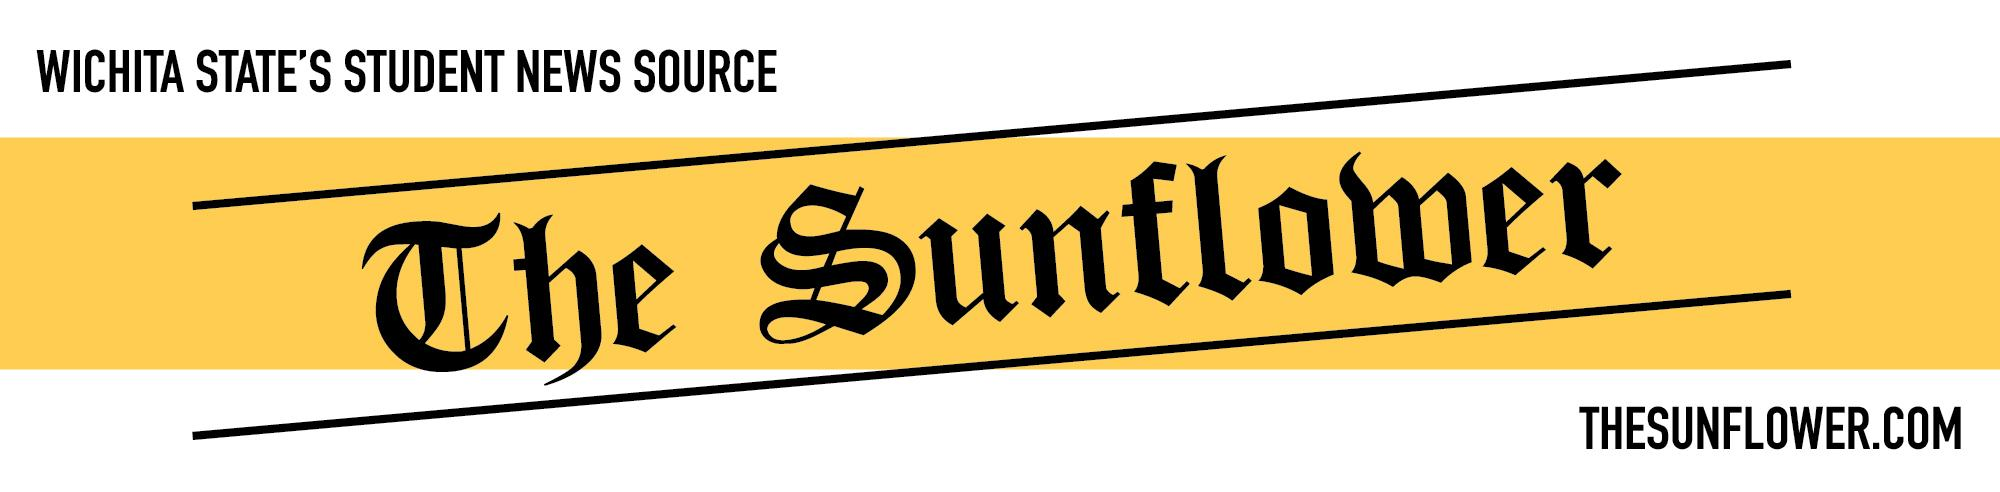 Wichita State's independent, student-run news source